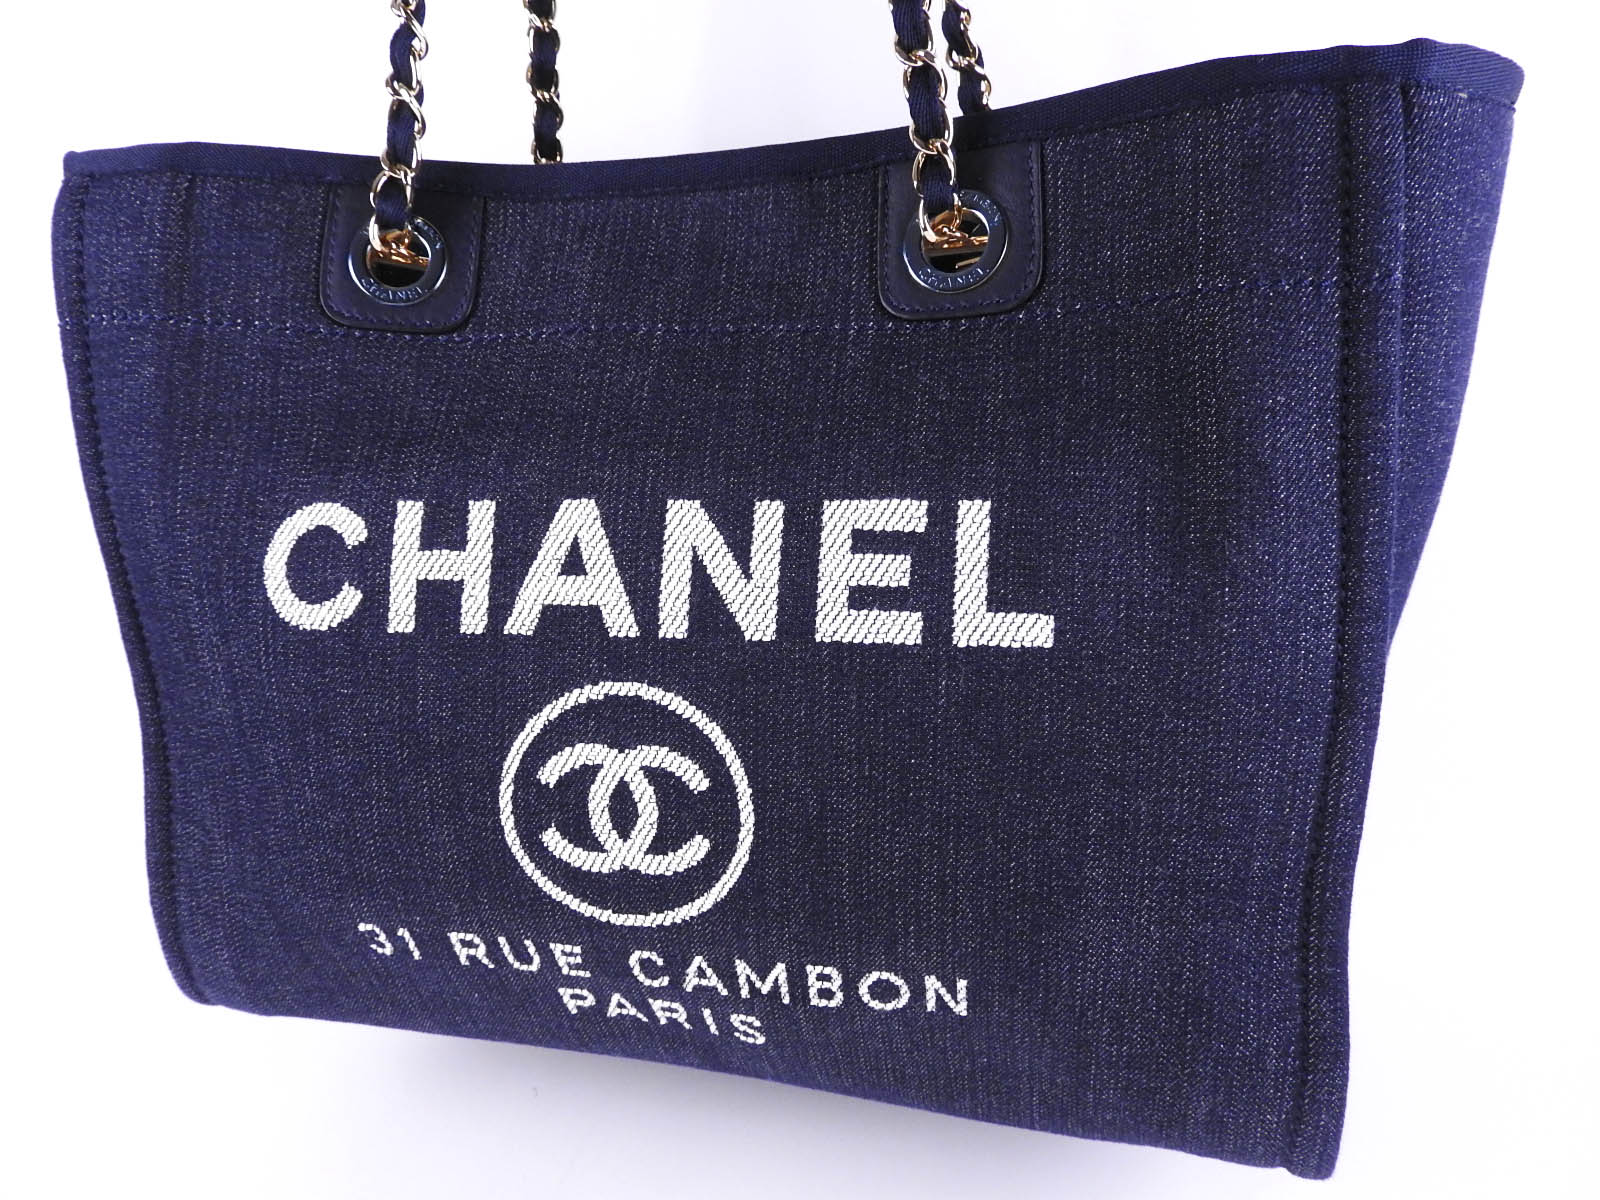 bfef654af995 Auth CHANEL Deauville MM Chain Medium Shoulder Tote Bag Denim Blue A67001  A-9552